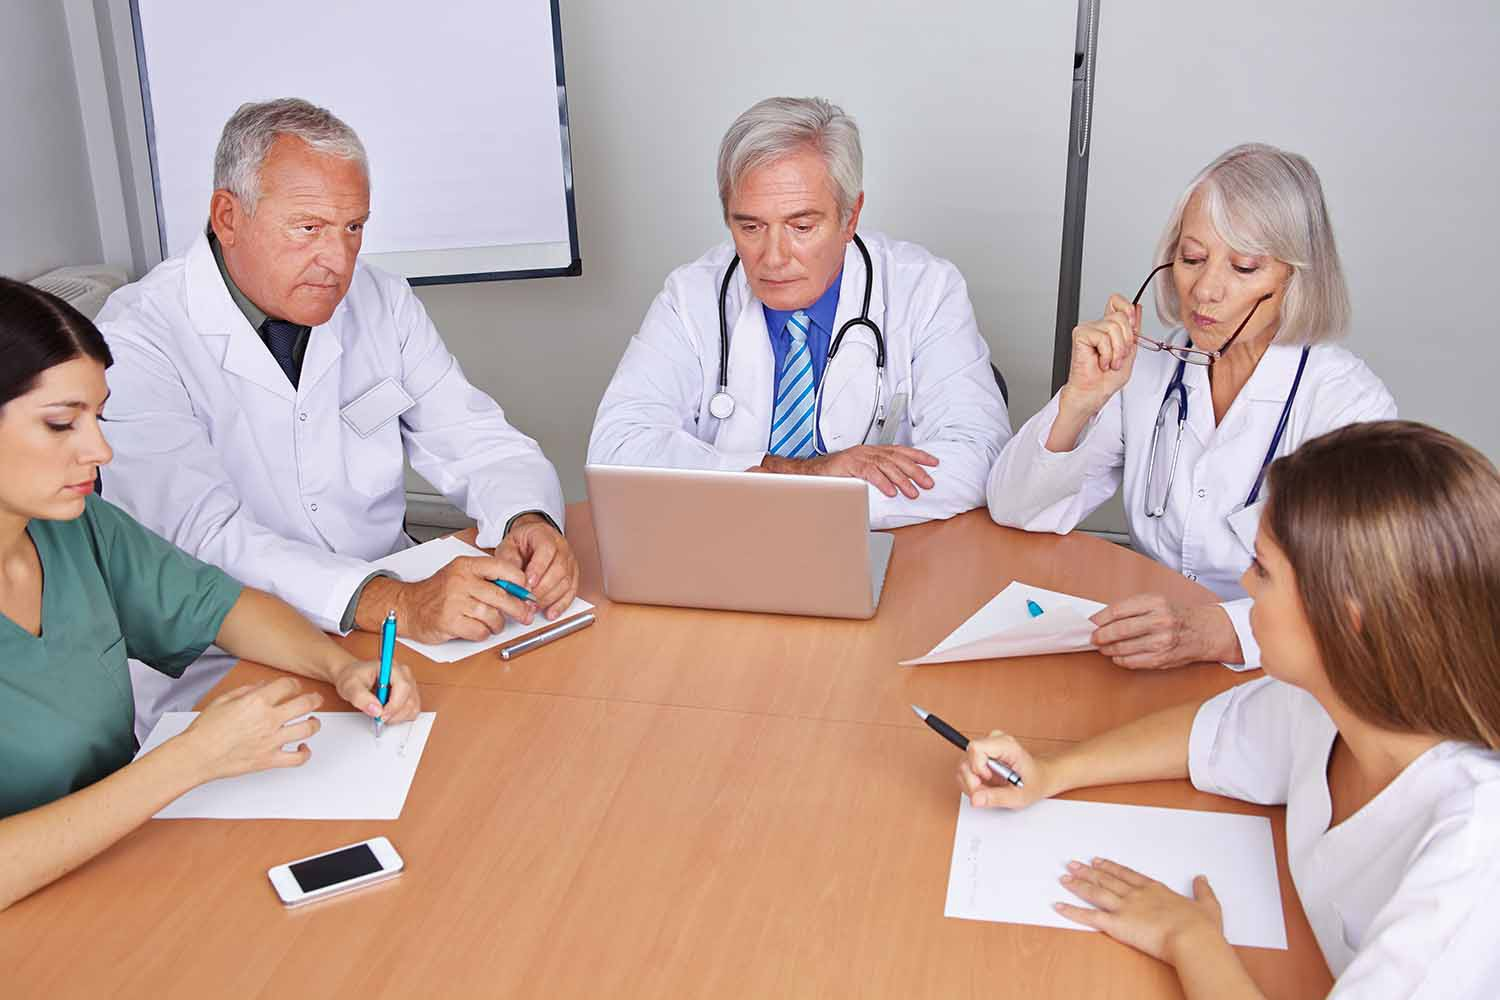 what are the benefits for doctors of joining a group medical practice